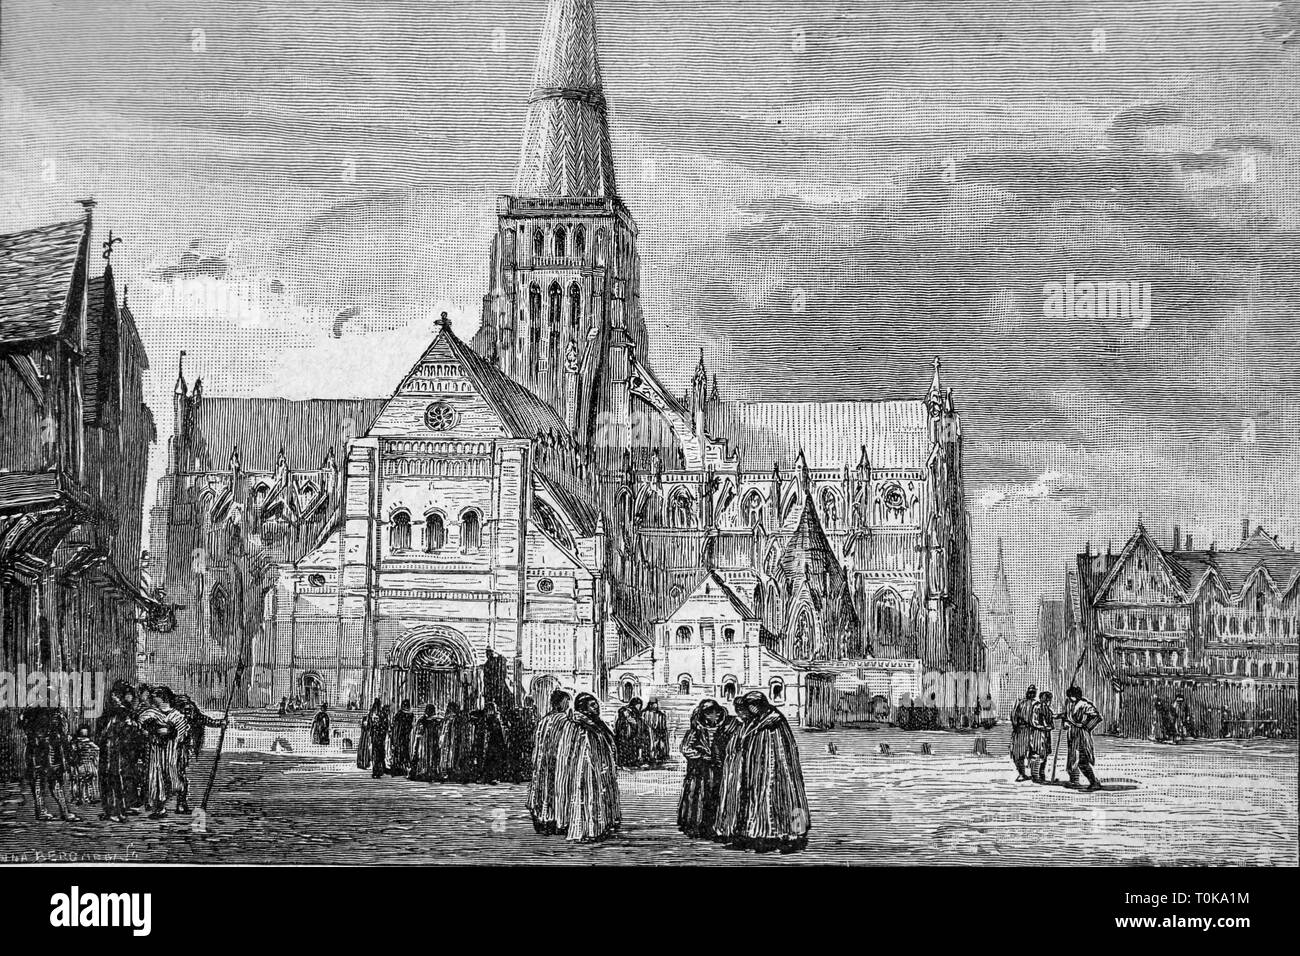 Illustration of the South-West view of the Old St Paul's Cathedral in 1191 showing the Chapter House from the book Cassell's History of England - Stock Image